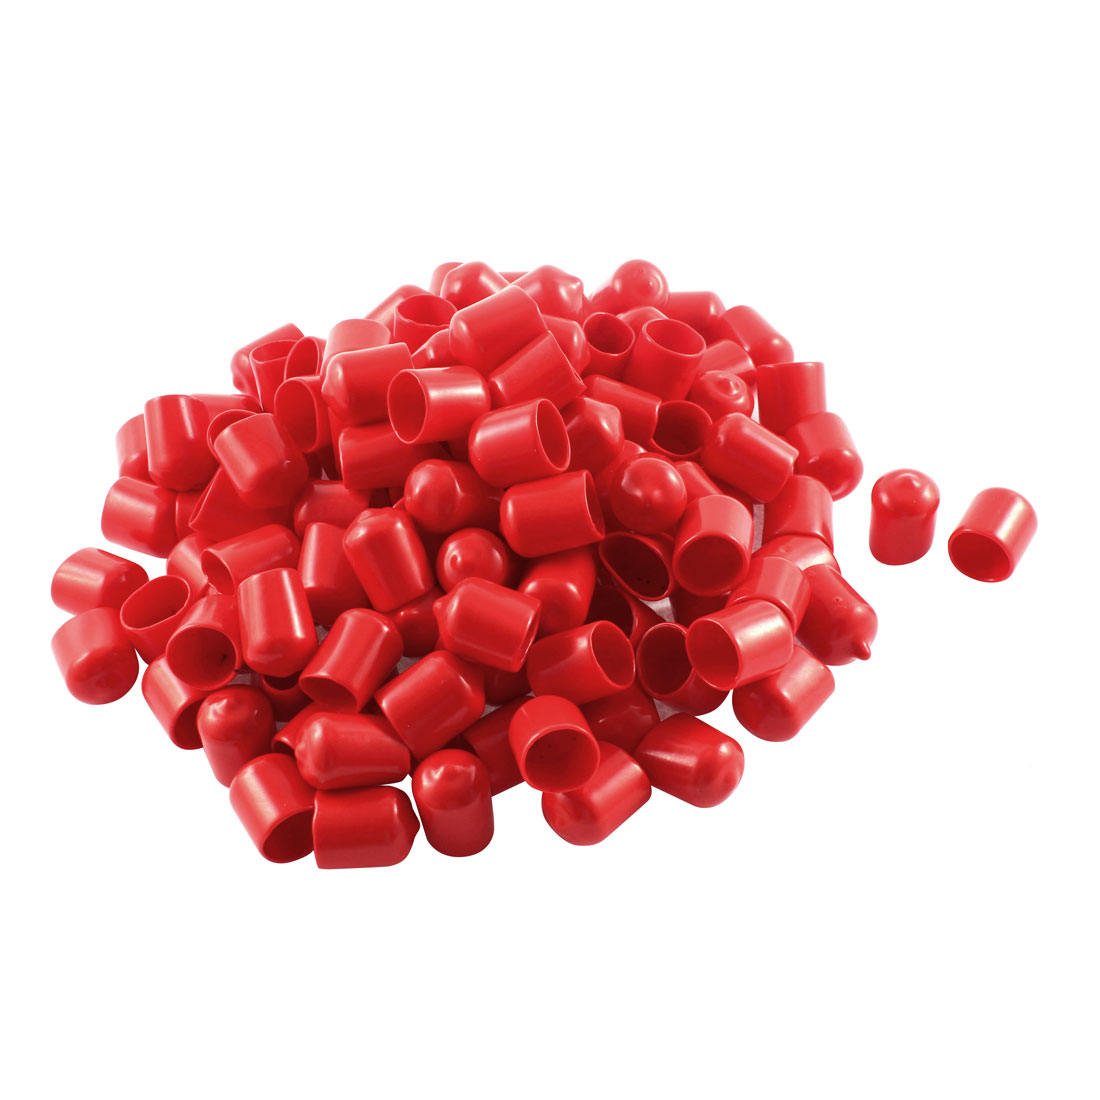 150Pcs Red Soft Plastic PVC Insulated End Sleeves Caps Cover 16mm Dia